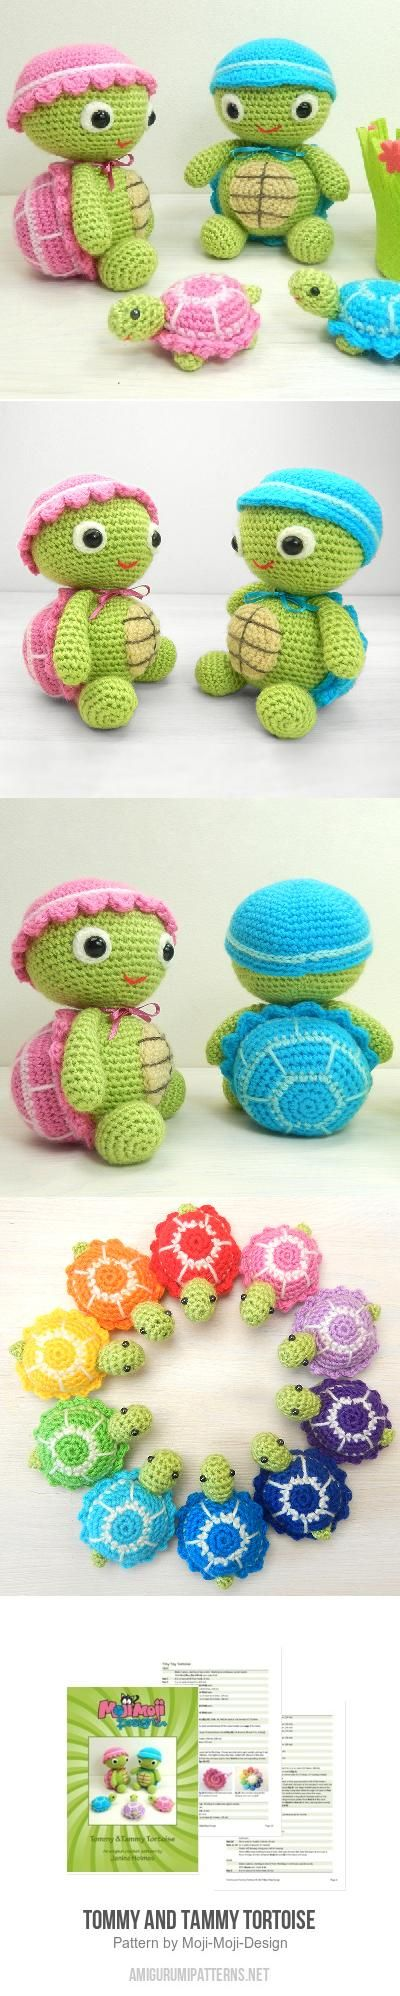 Tommy And Tammy Tortoise Amigurumi Pattern